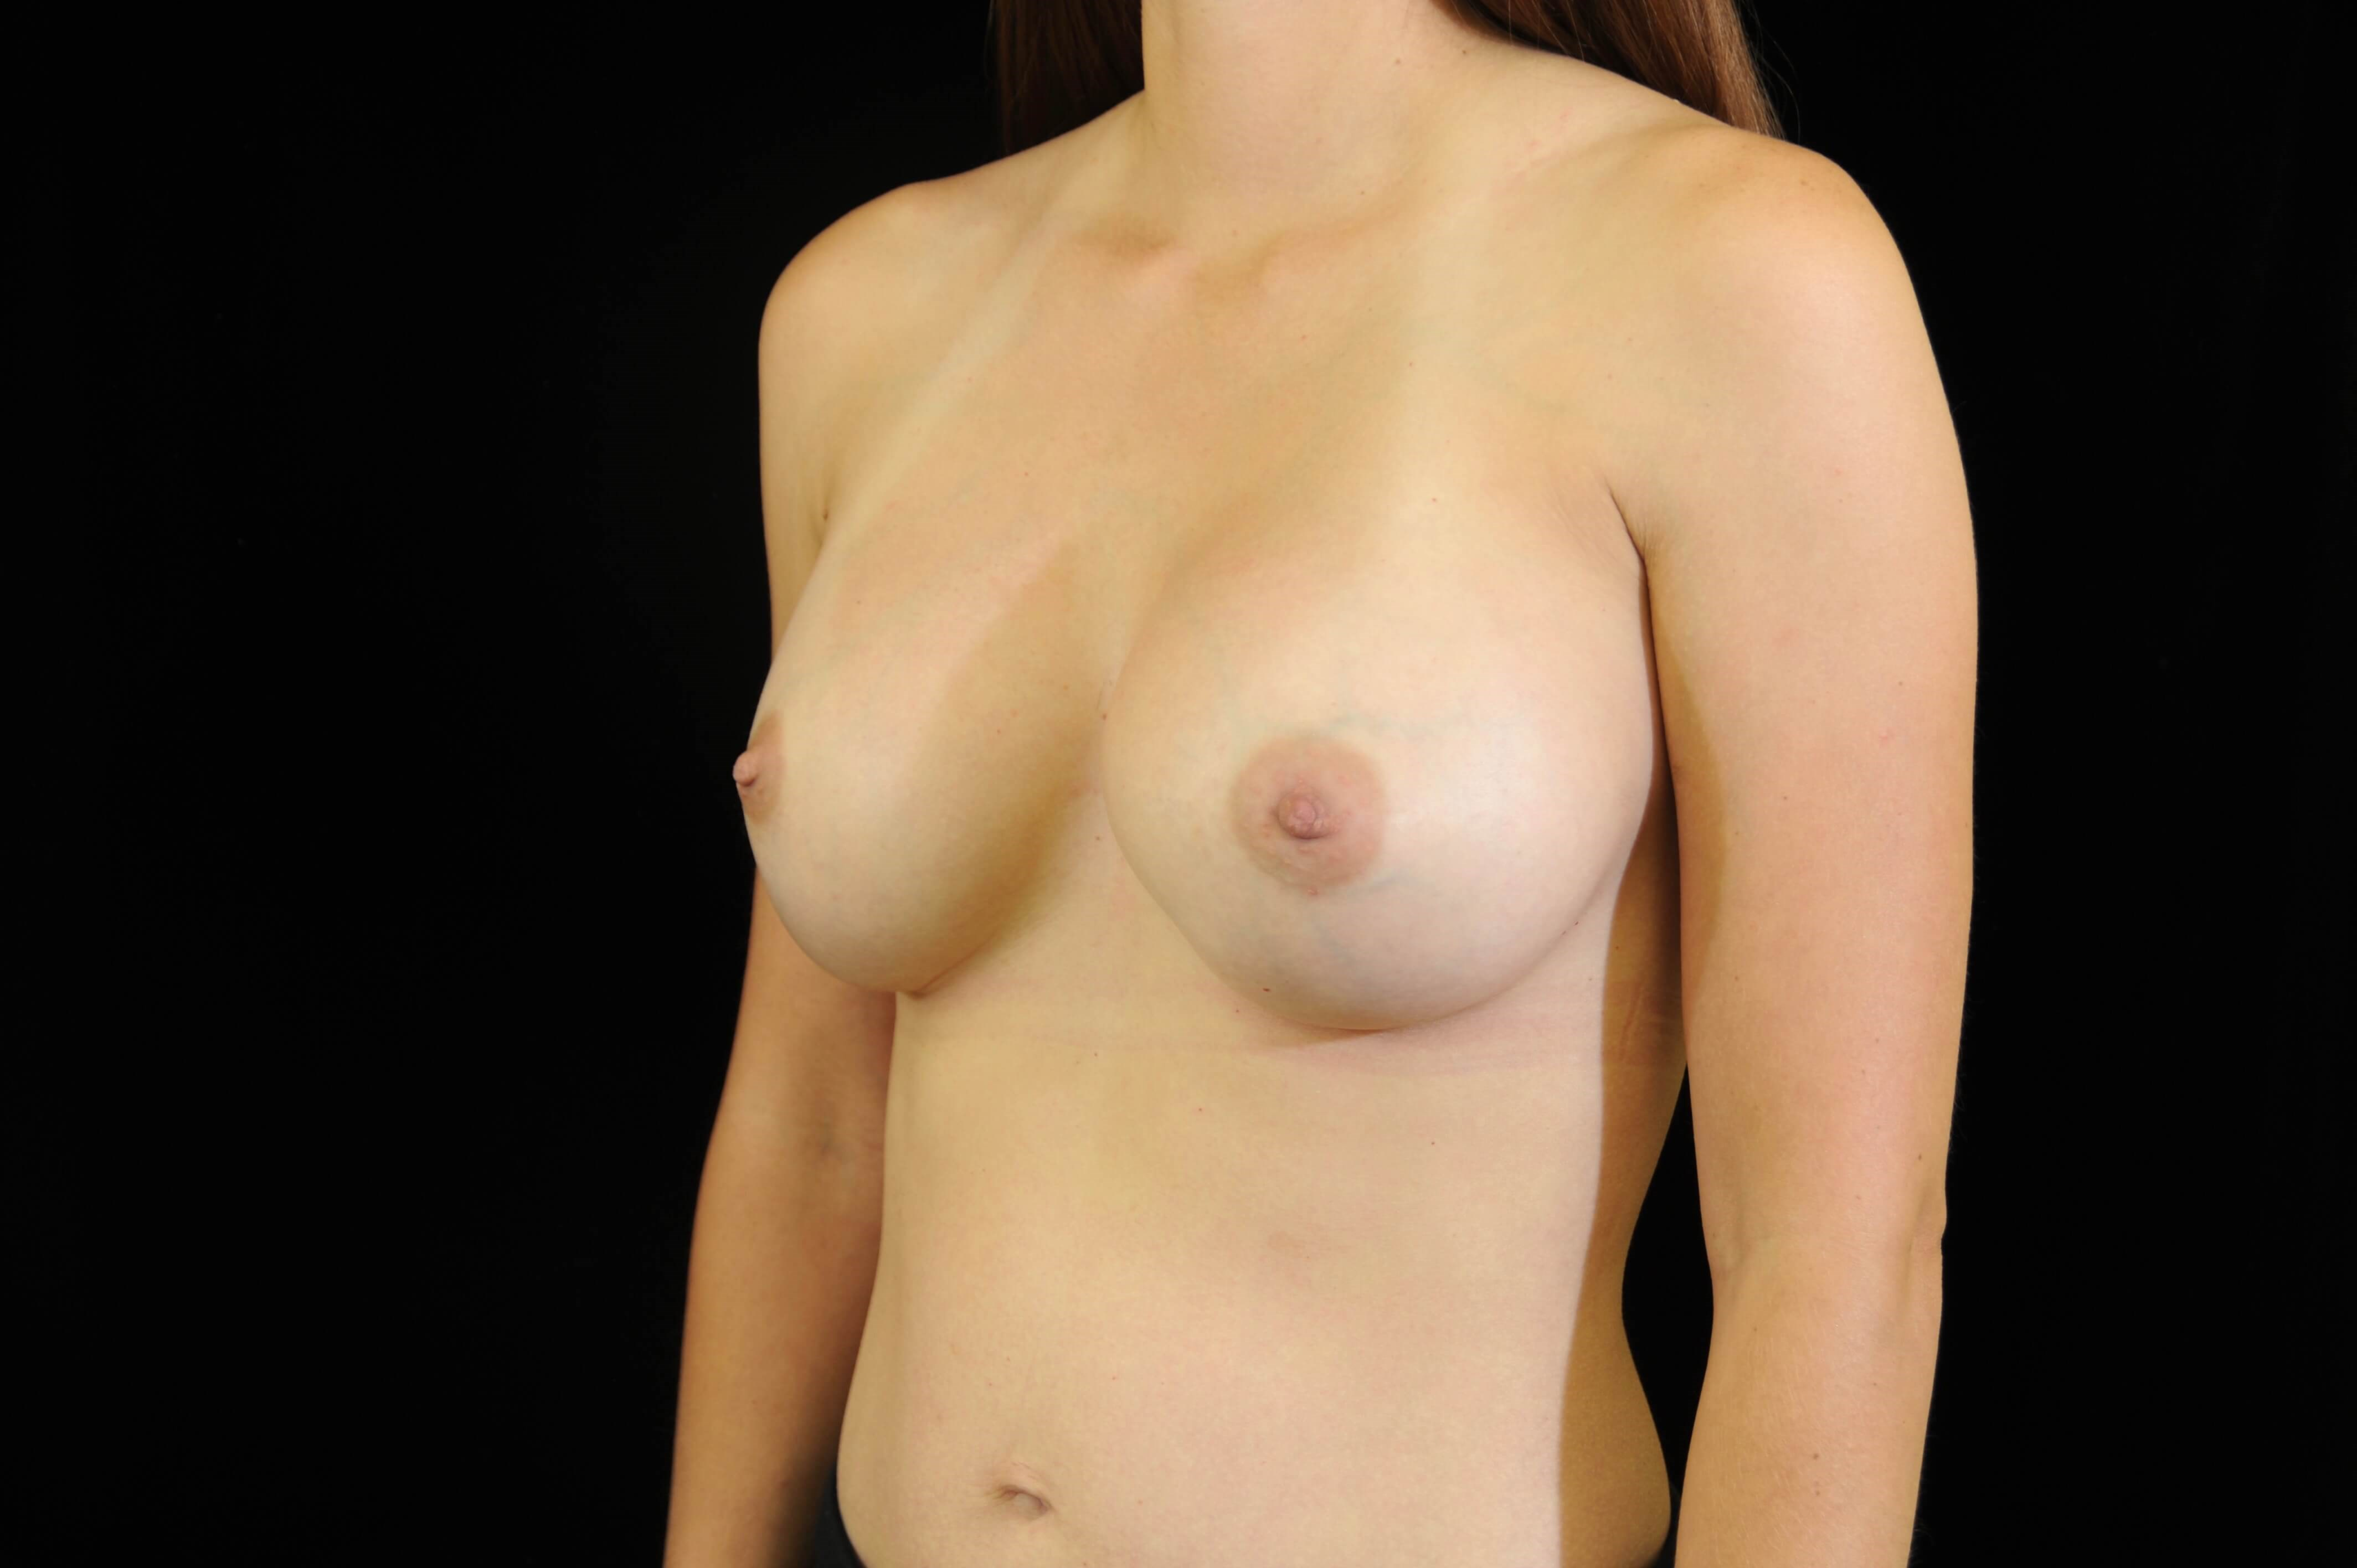 Breast Implant Revision After Breast Revision